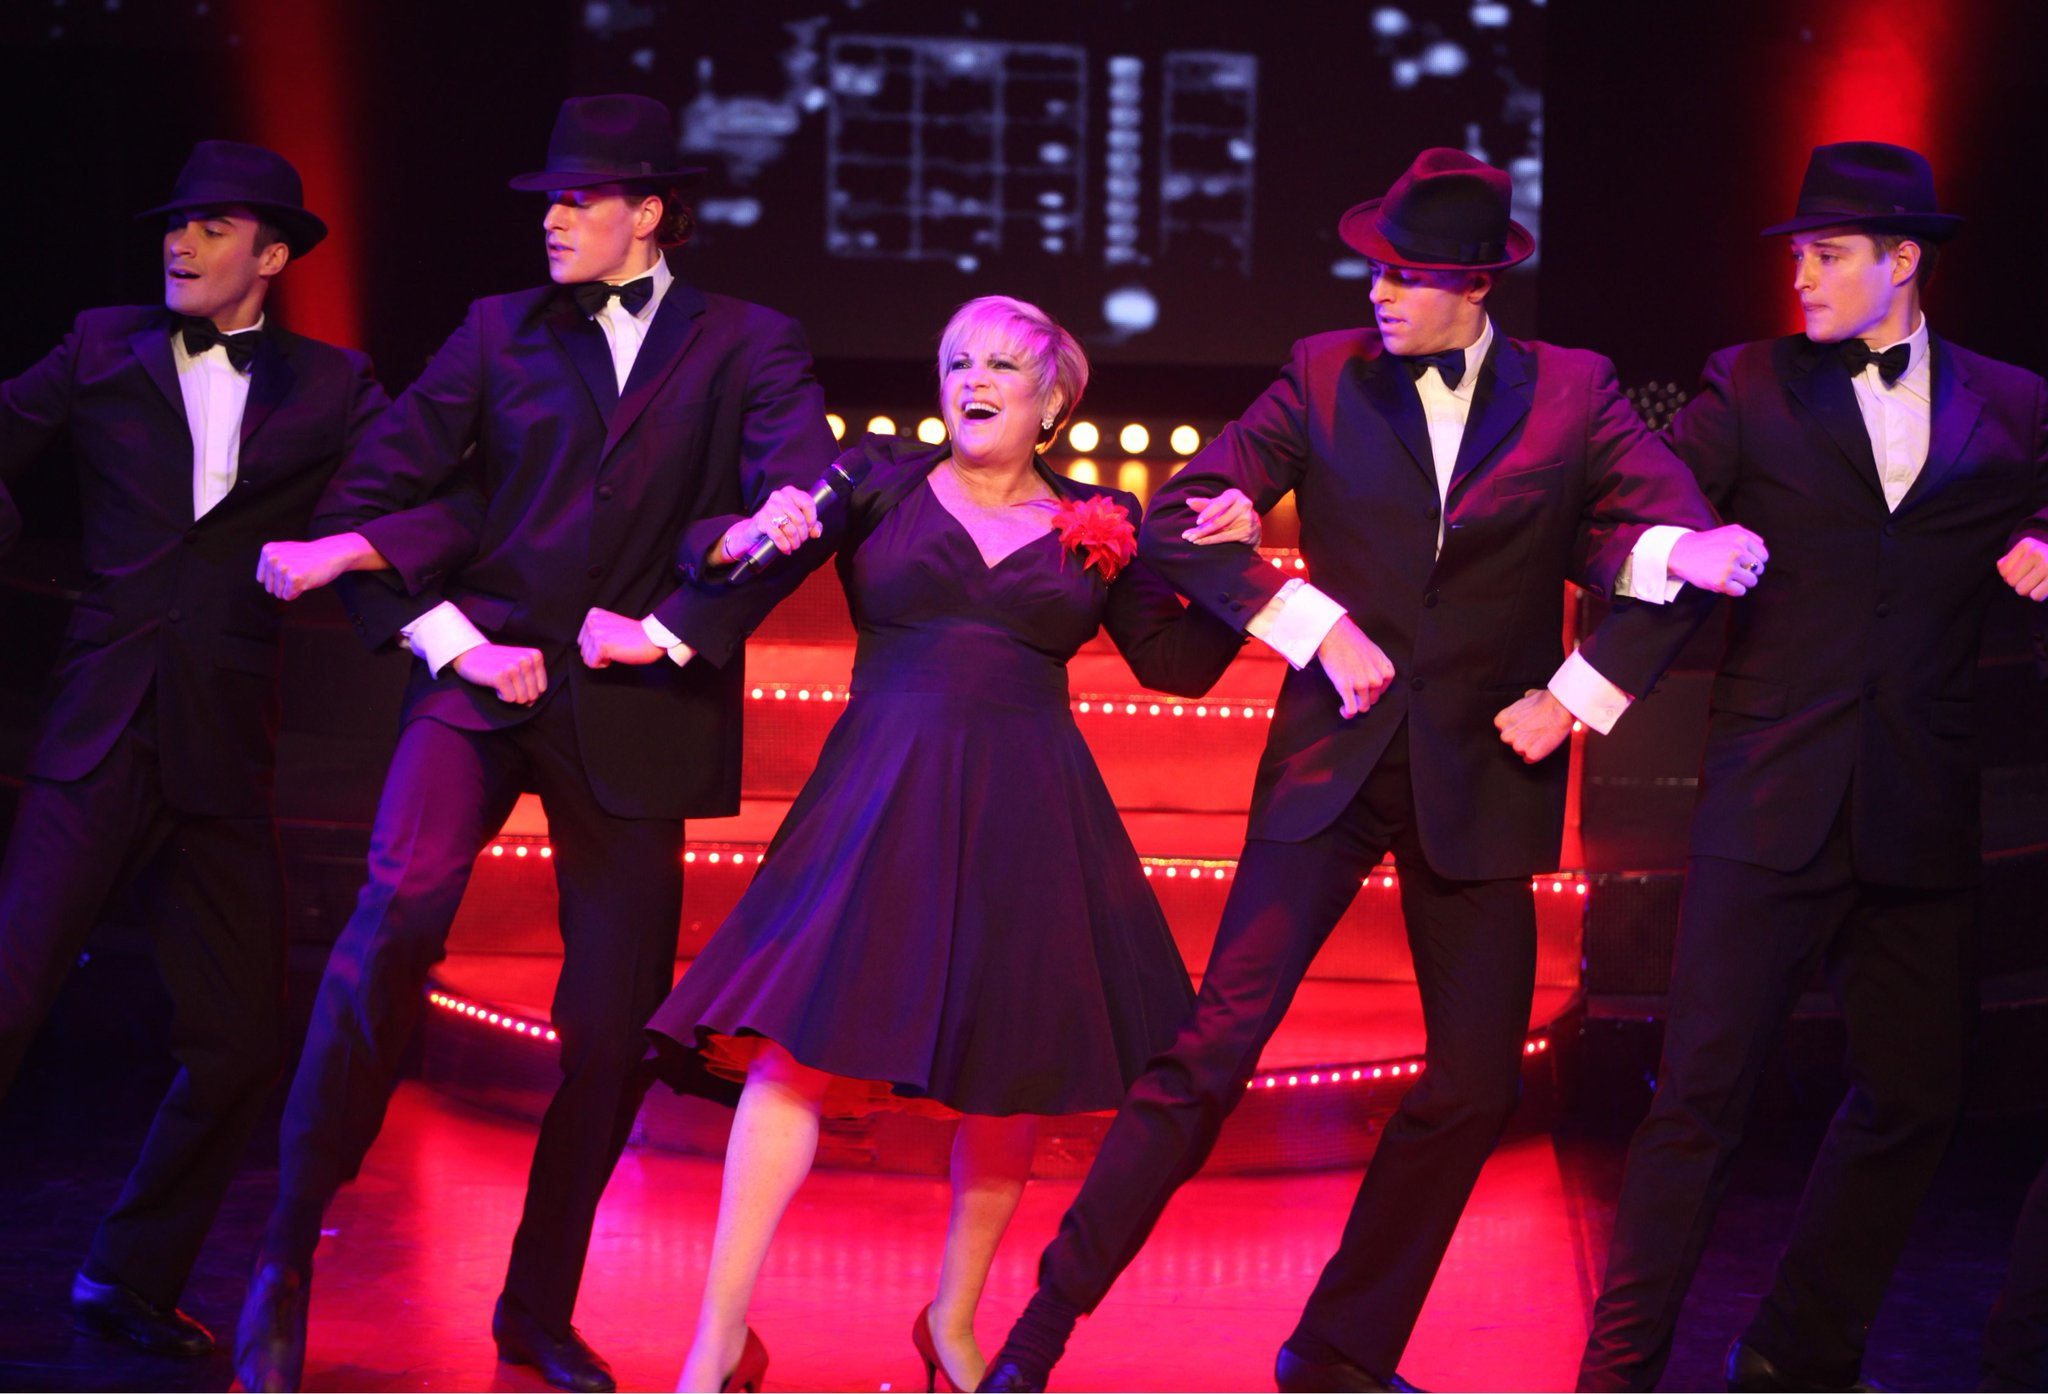 RT @NewTheatreOx: Have you seen the pix from @JudyGarlandShow (Jul 23-25)? Stars Judy's daughter Lorna Luft. http://t.co/qztAjv6ZEv http://…